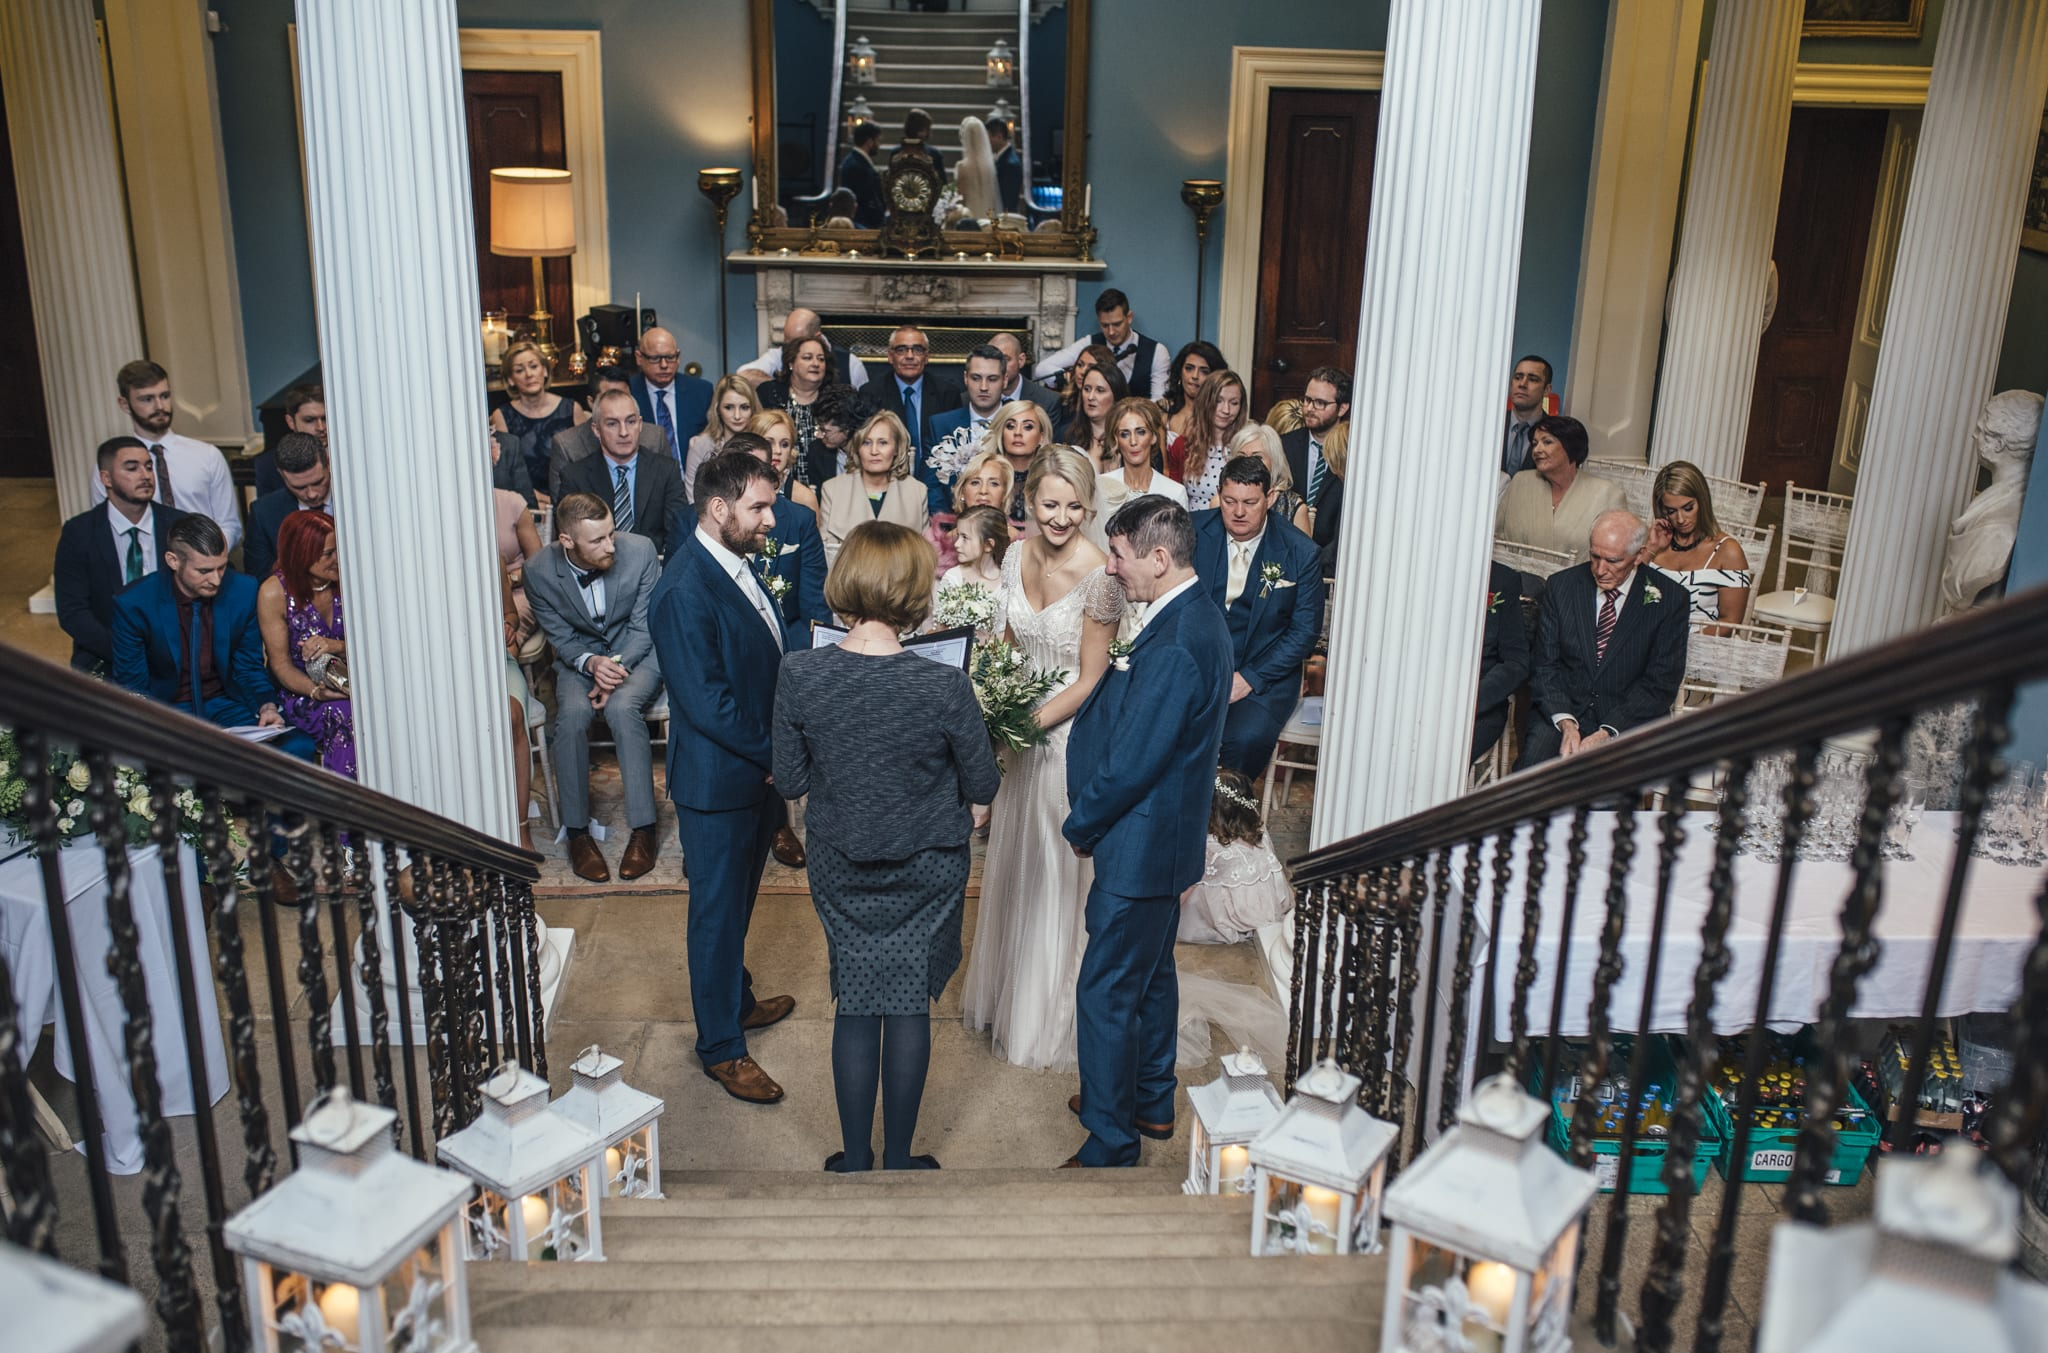 Drenagh House wedding photography